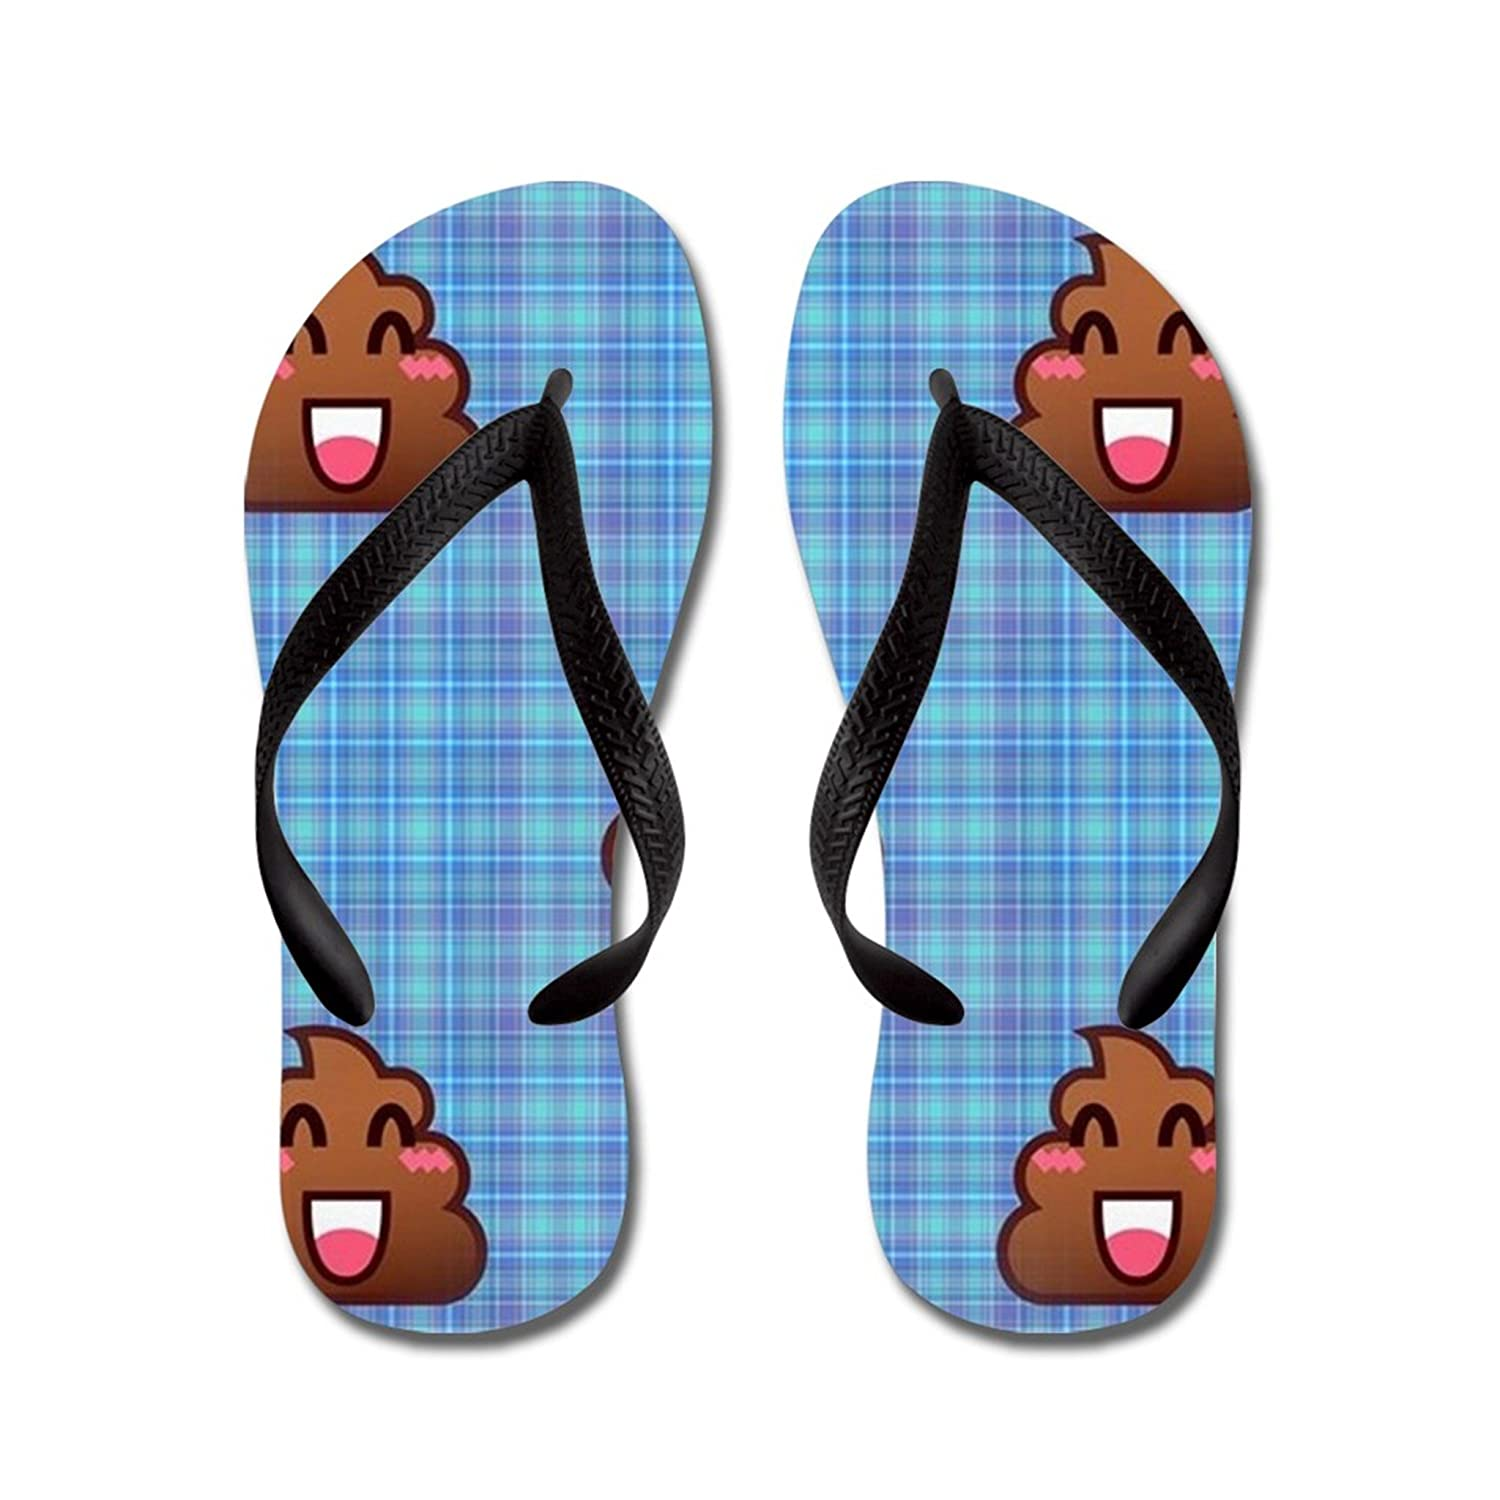 Lplpol Plaid Poo Emoji Flip Flops for Kids and Adult Unisex Beach Sandals Pool Shoes Party Slippers